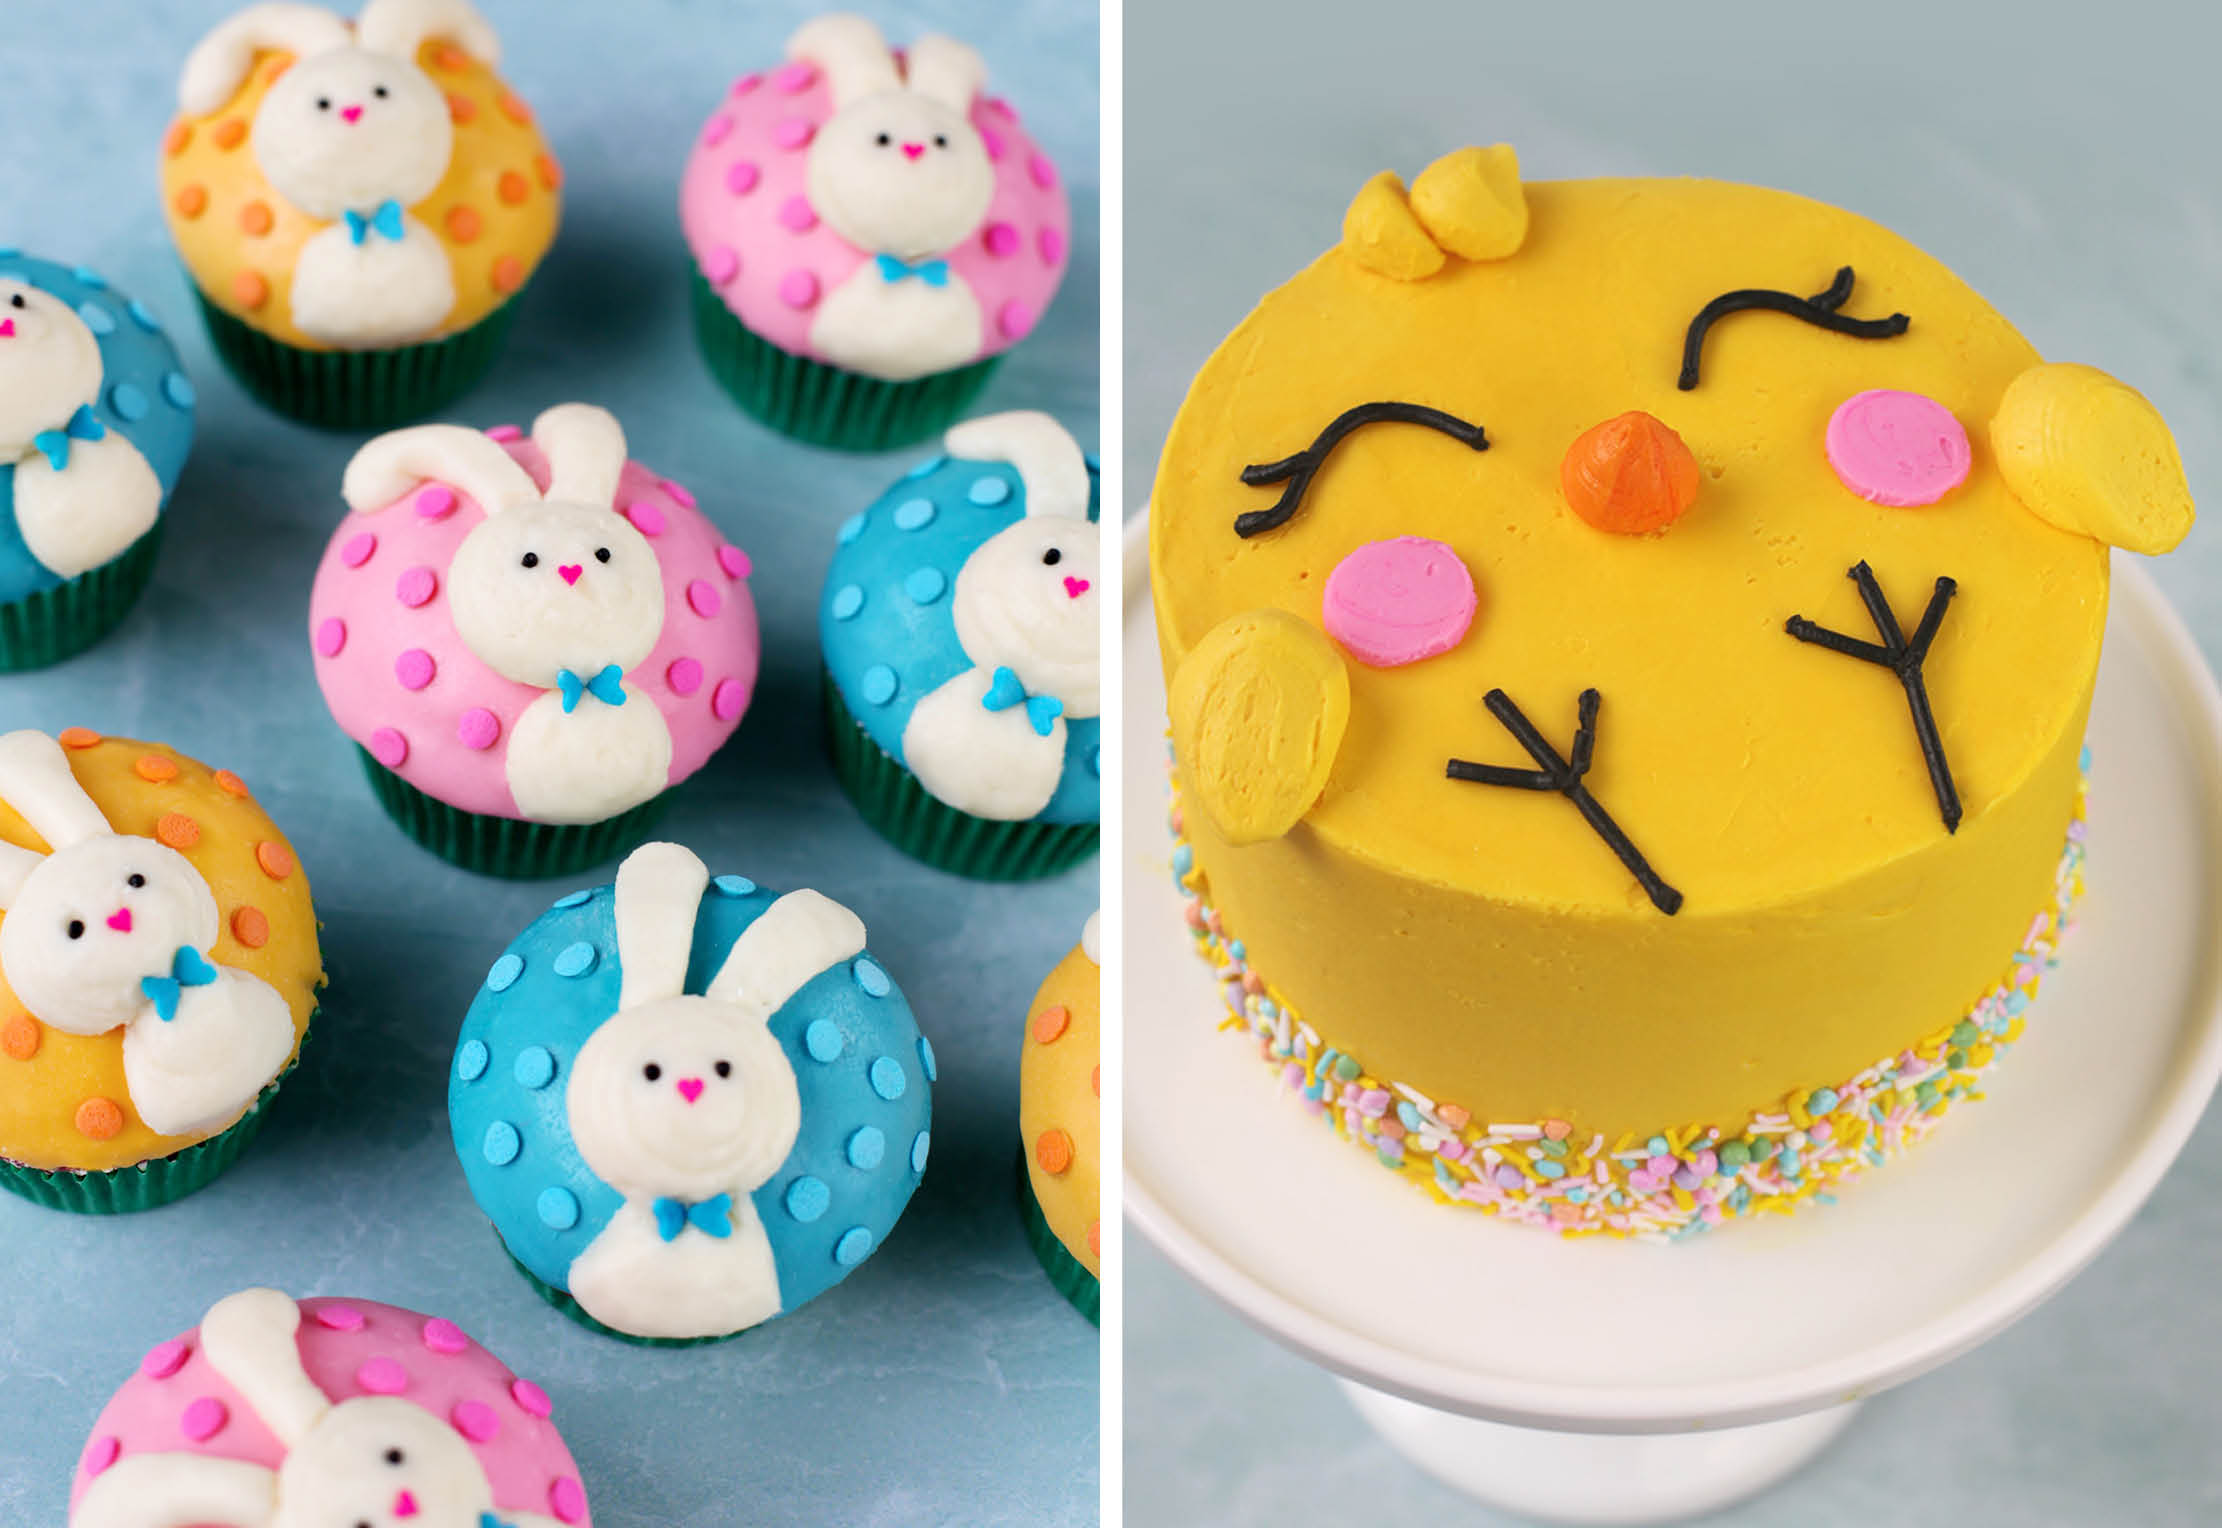 Easter Cupcakes and Chick Cake